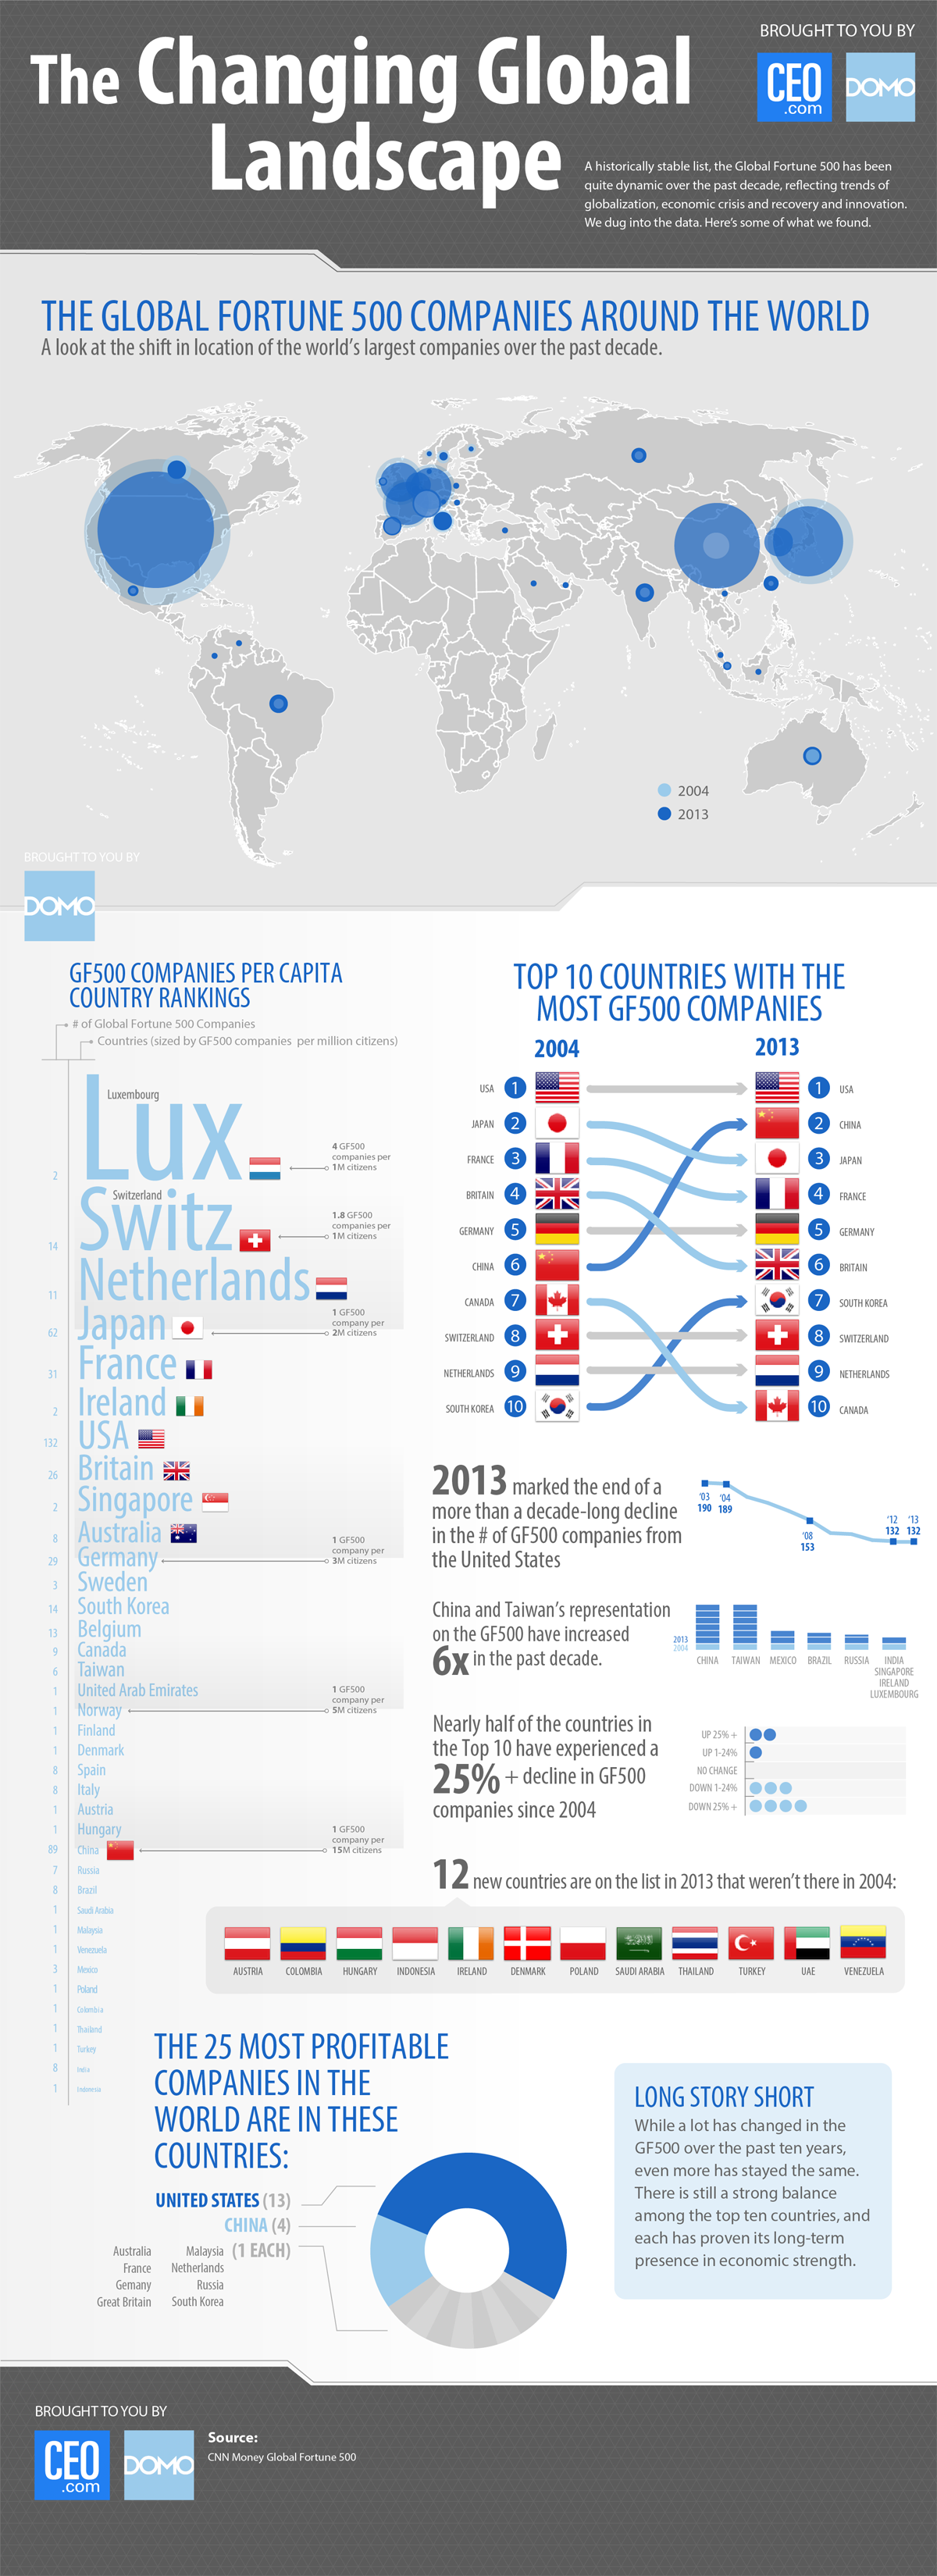 Domo_Global-Landscape_Infographic